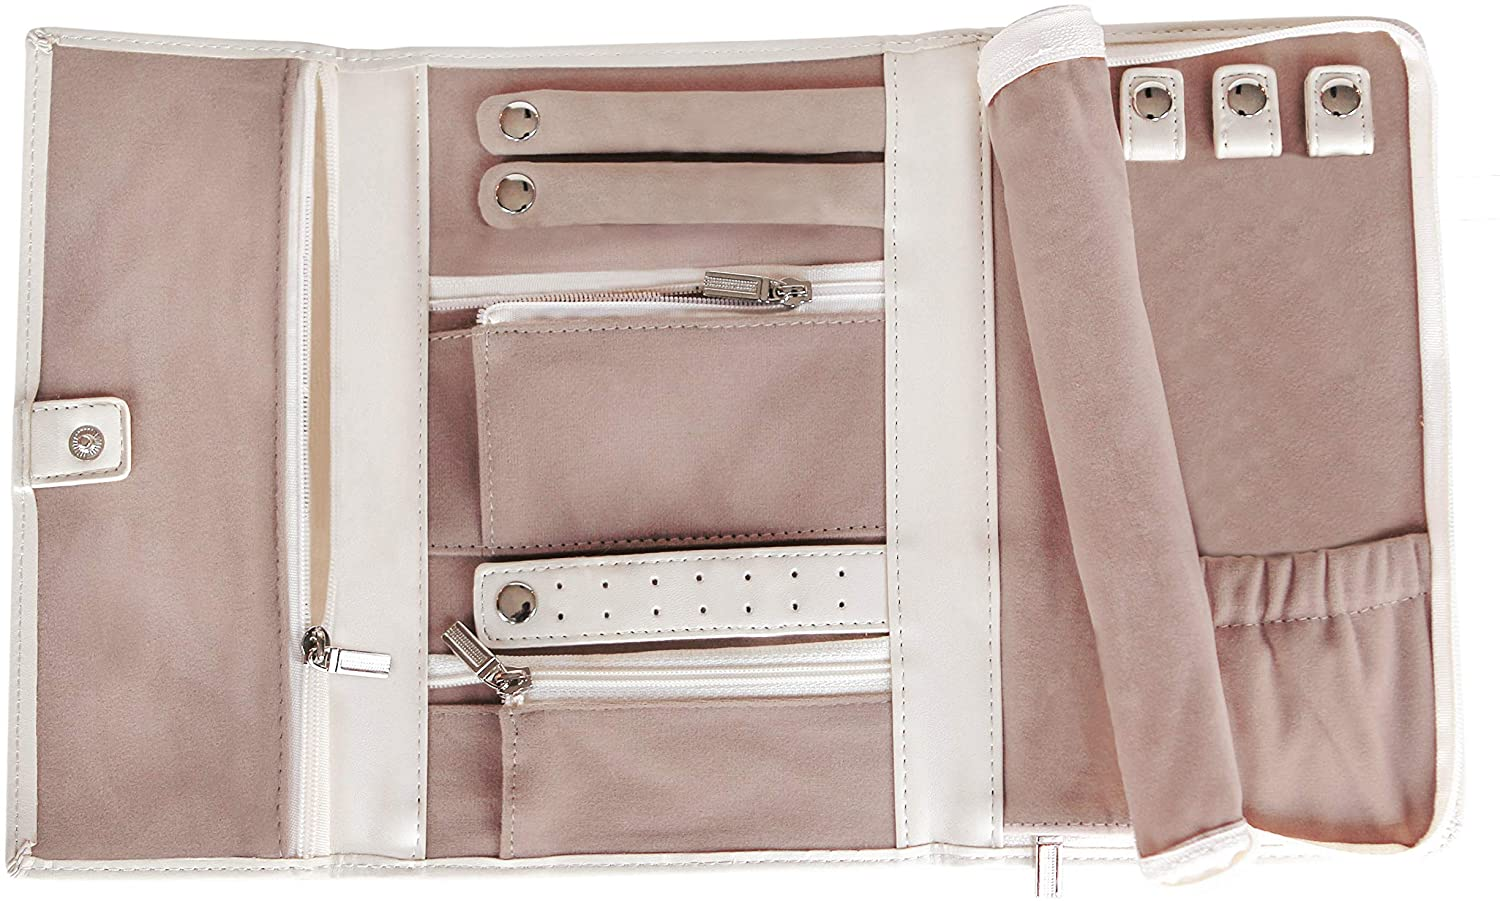 CASE ELEGANCE Vegan Leather Pouch